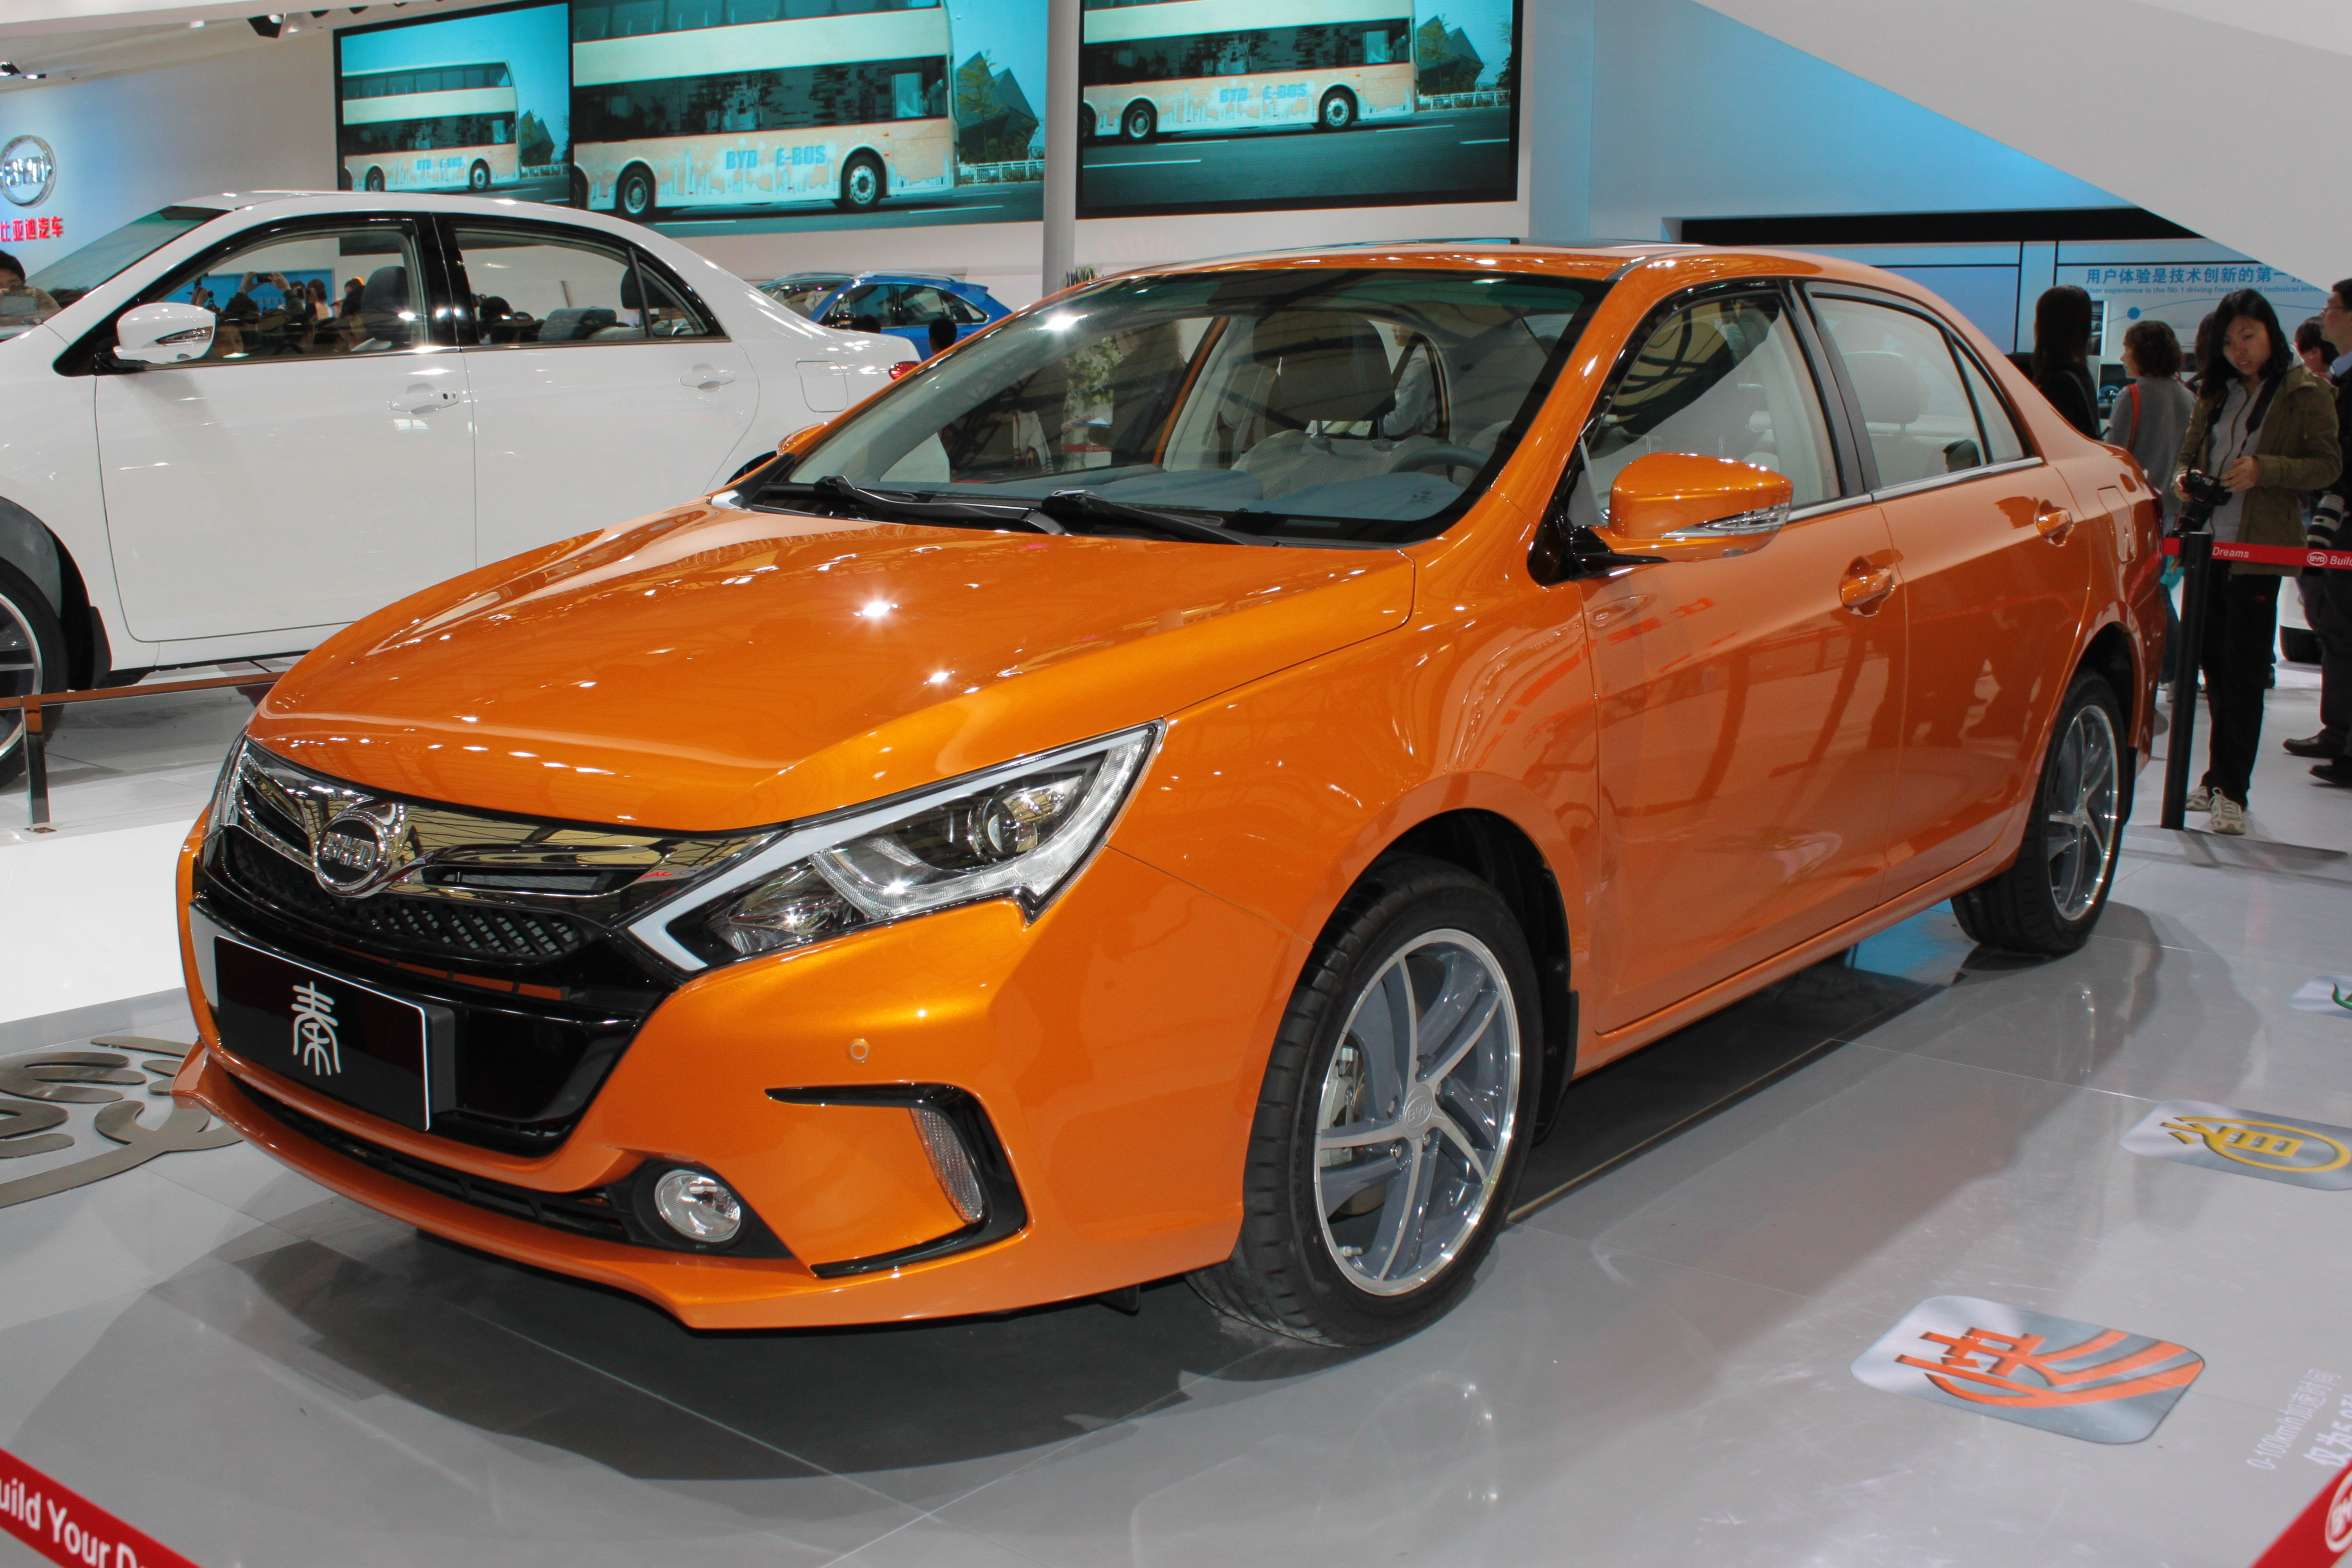 The BYD Qin on display at the Auto Shanghai show on April 21, 2013. (Image Credit: Wikimedia Commons/El monty)